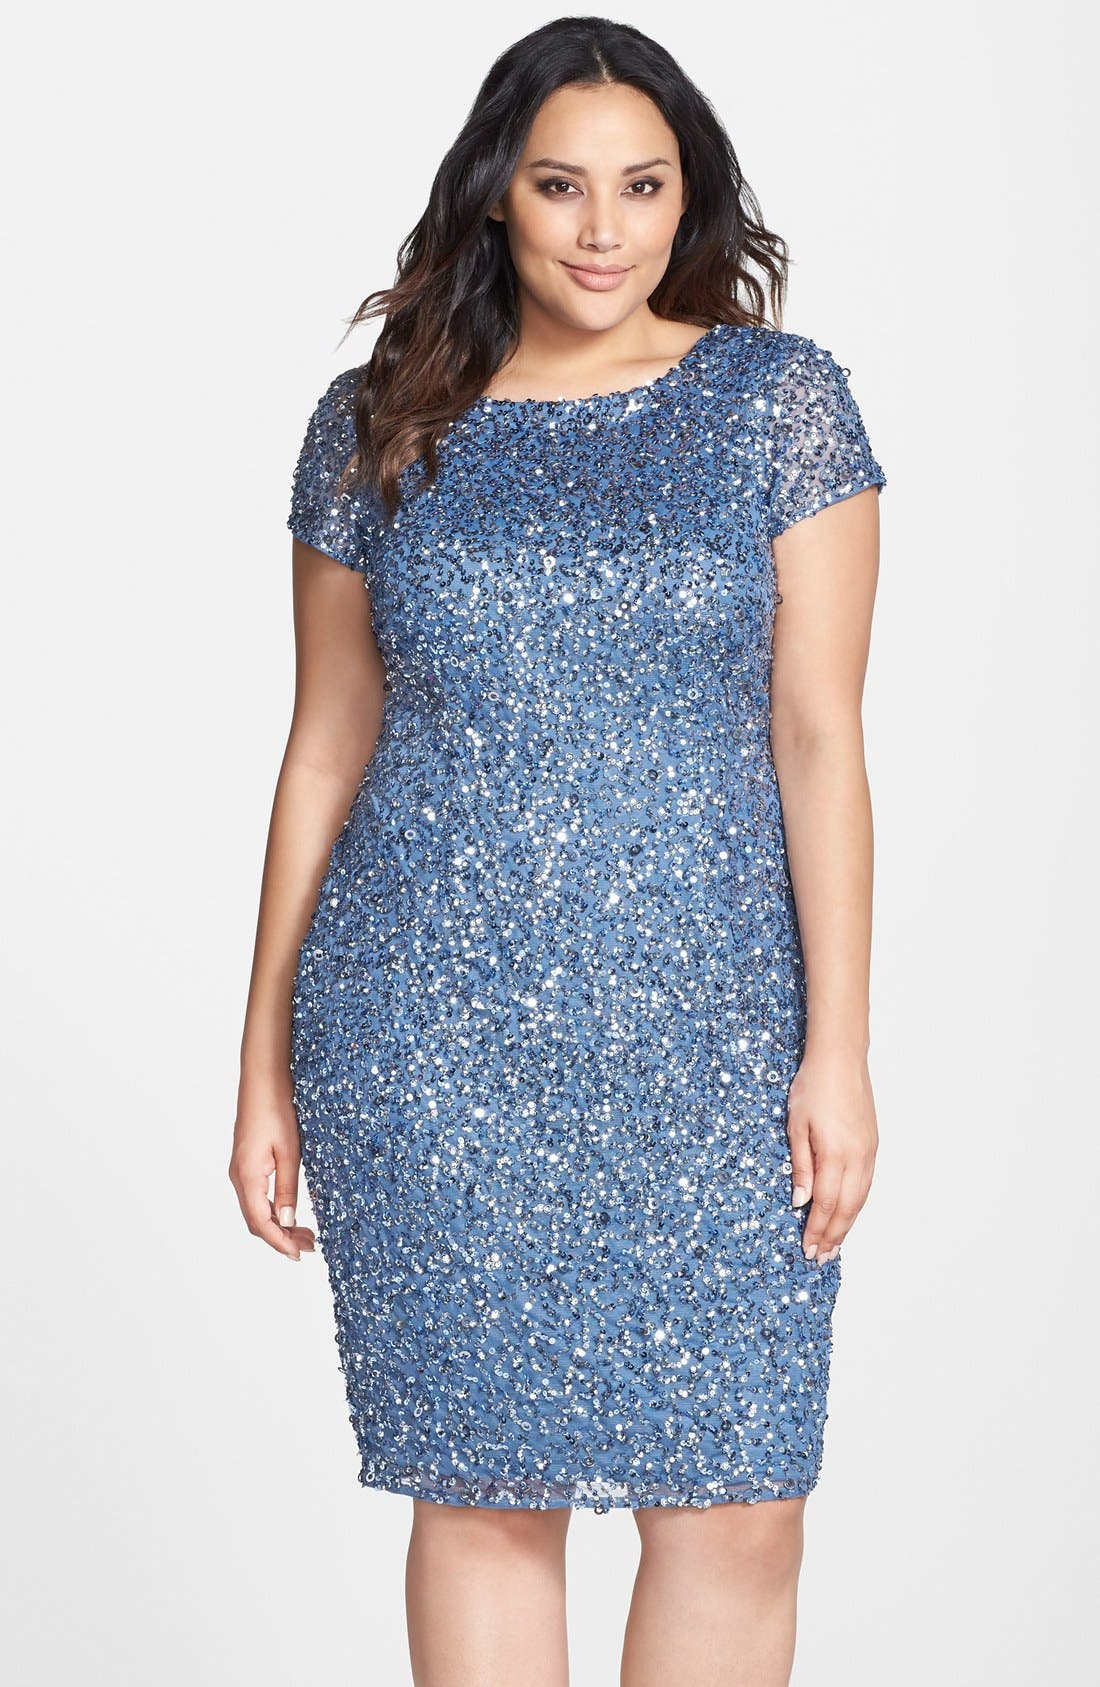 Alternate Image 1 Selected - Adrianna Papell Beaded Cap Sleeve Sheath Dress (Plus Size)